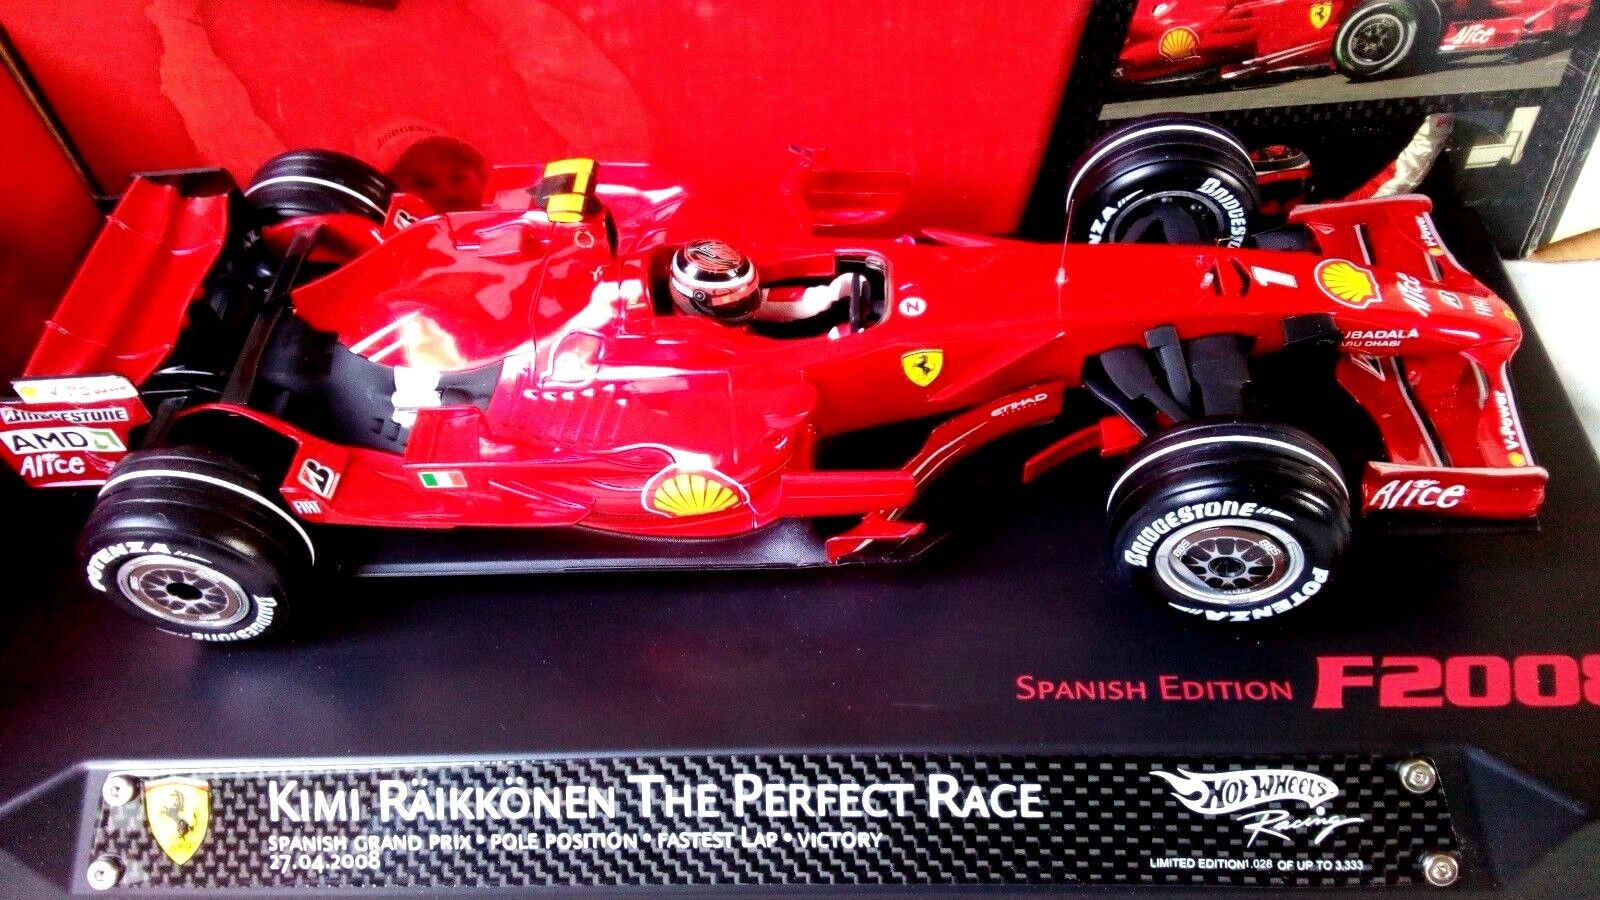 1/18 Ferrari F2018  HAT TRICK The Perfect Race Kimi Räikkönen HOTWHEELS